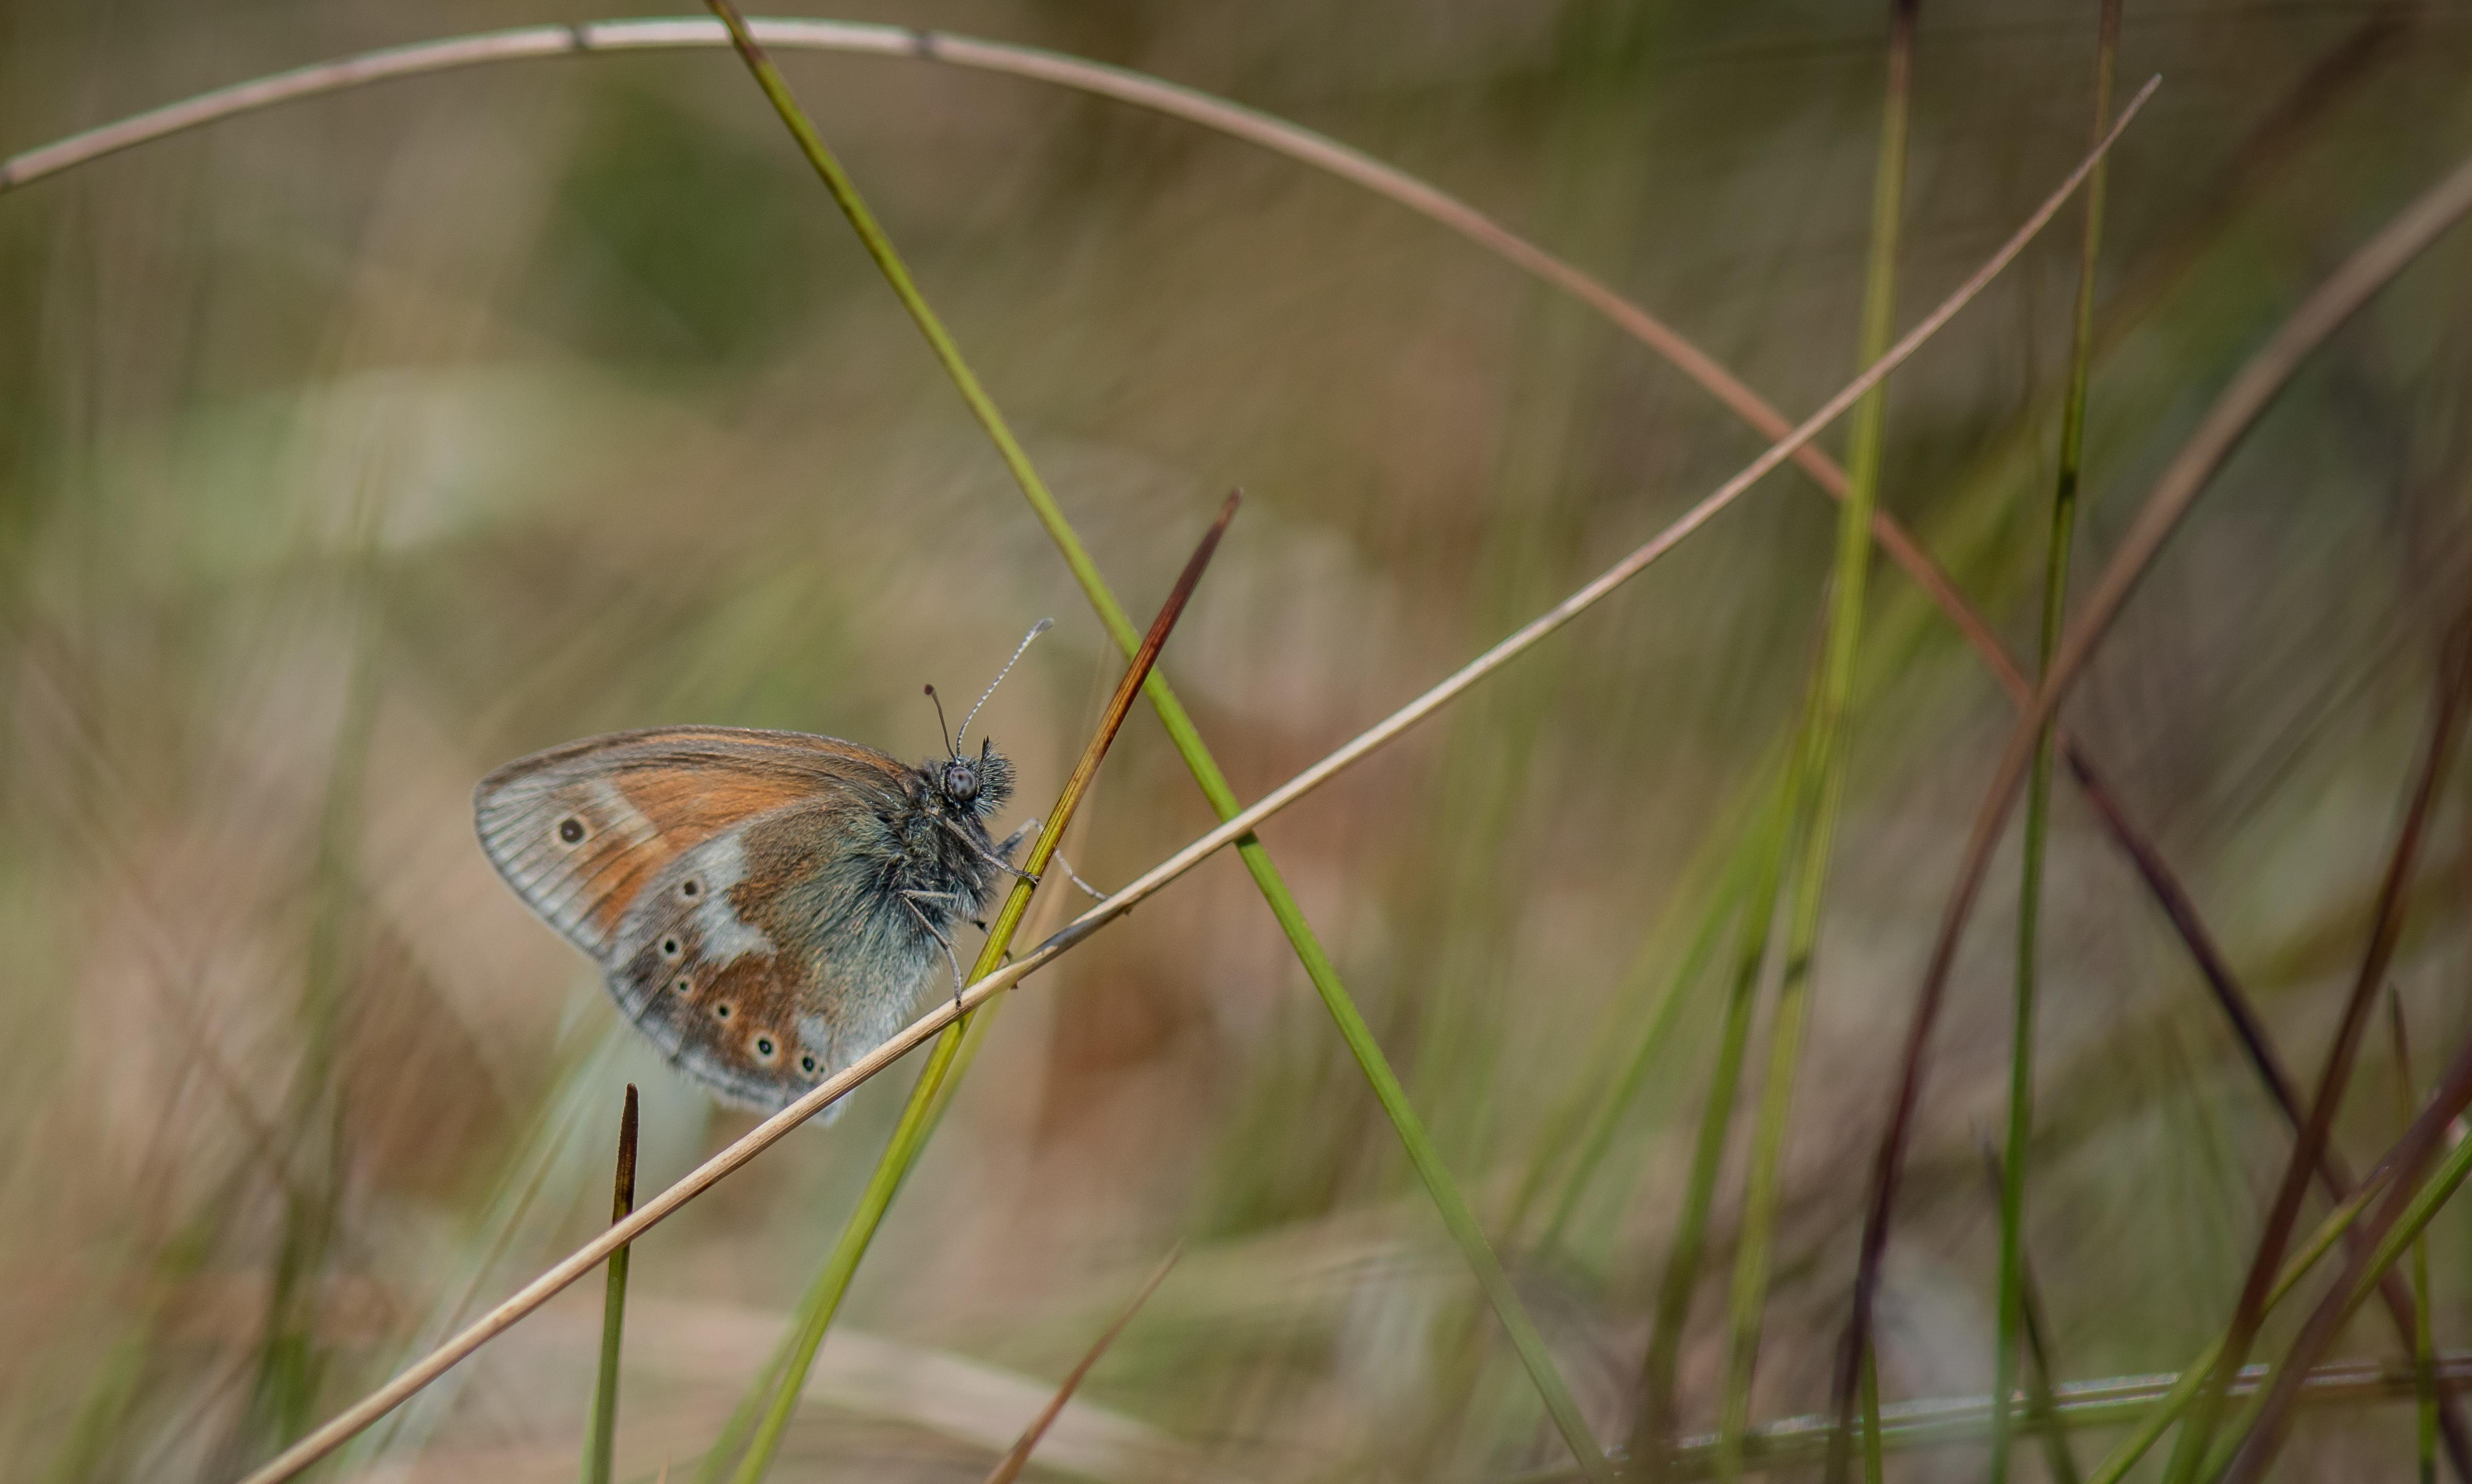 Large heath butterflies return to Manchester after 150 years